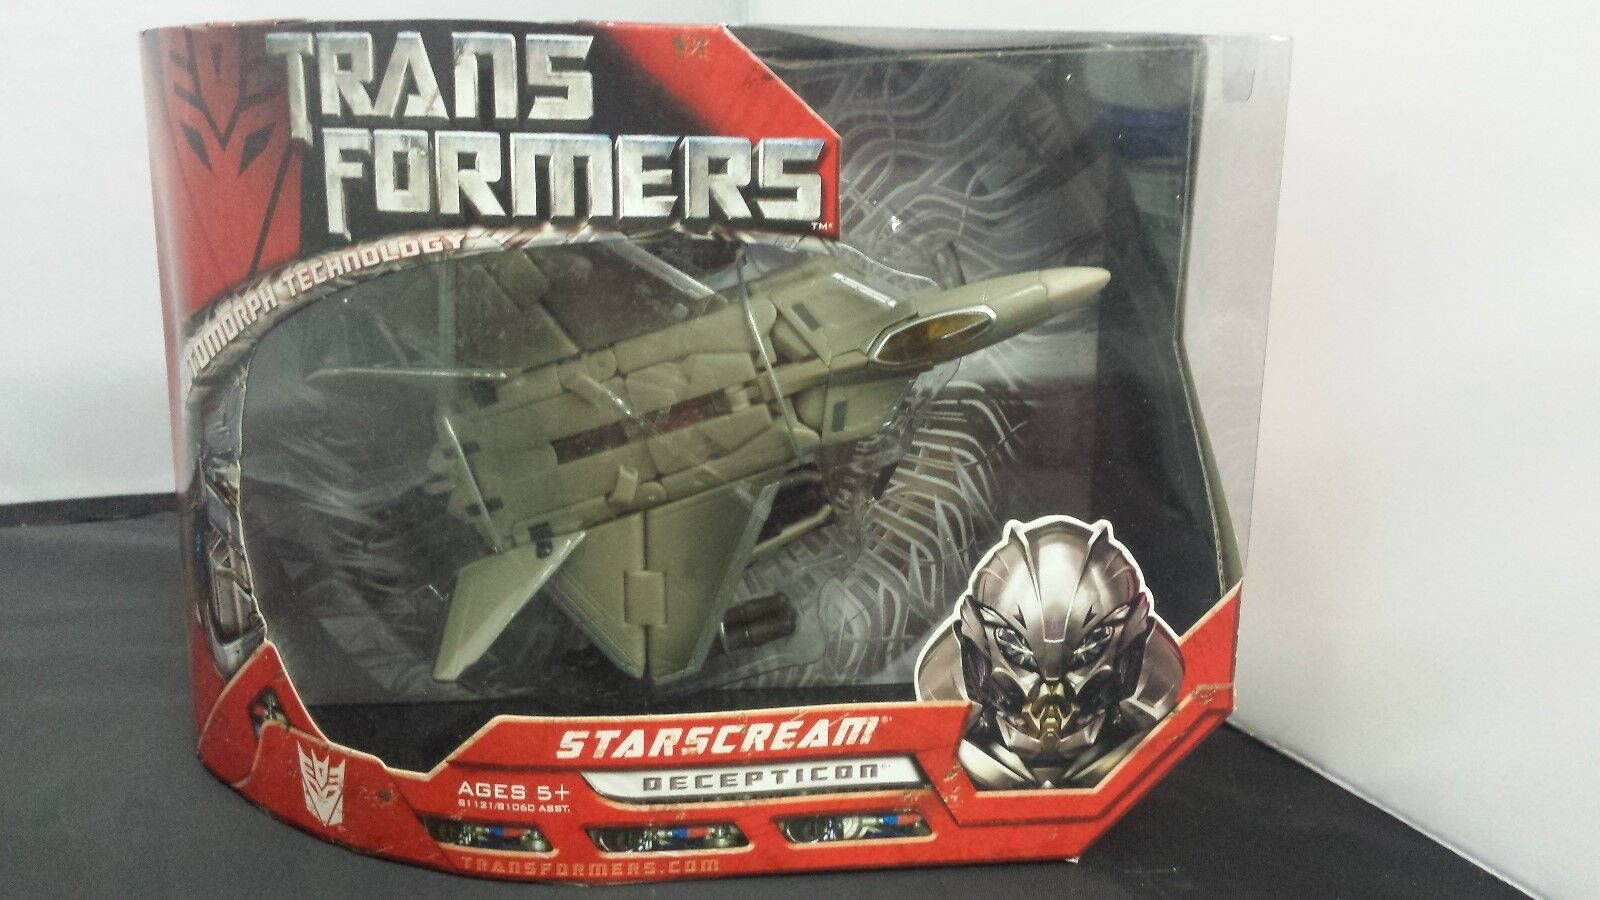 Transformatoren starscream decepticon hasbro 2006 neu in versiegelten kiste